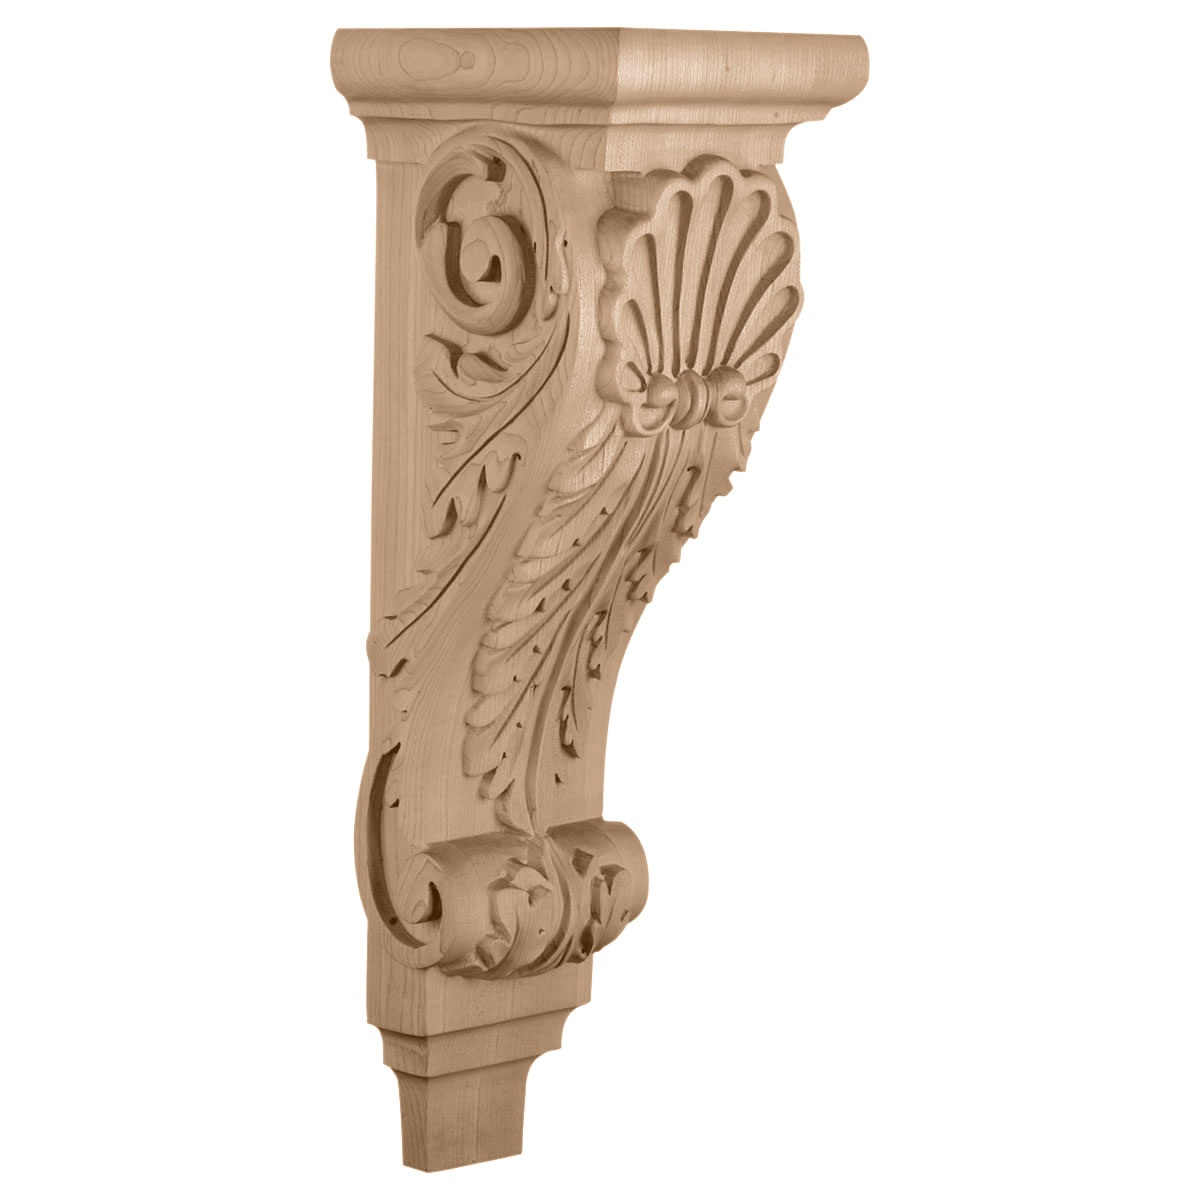 CORSH8 Extra Large Shell Corbel